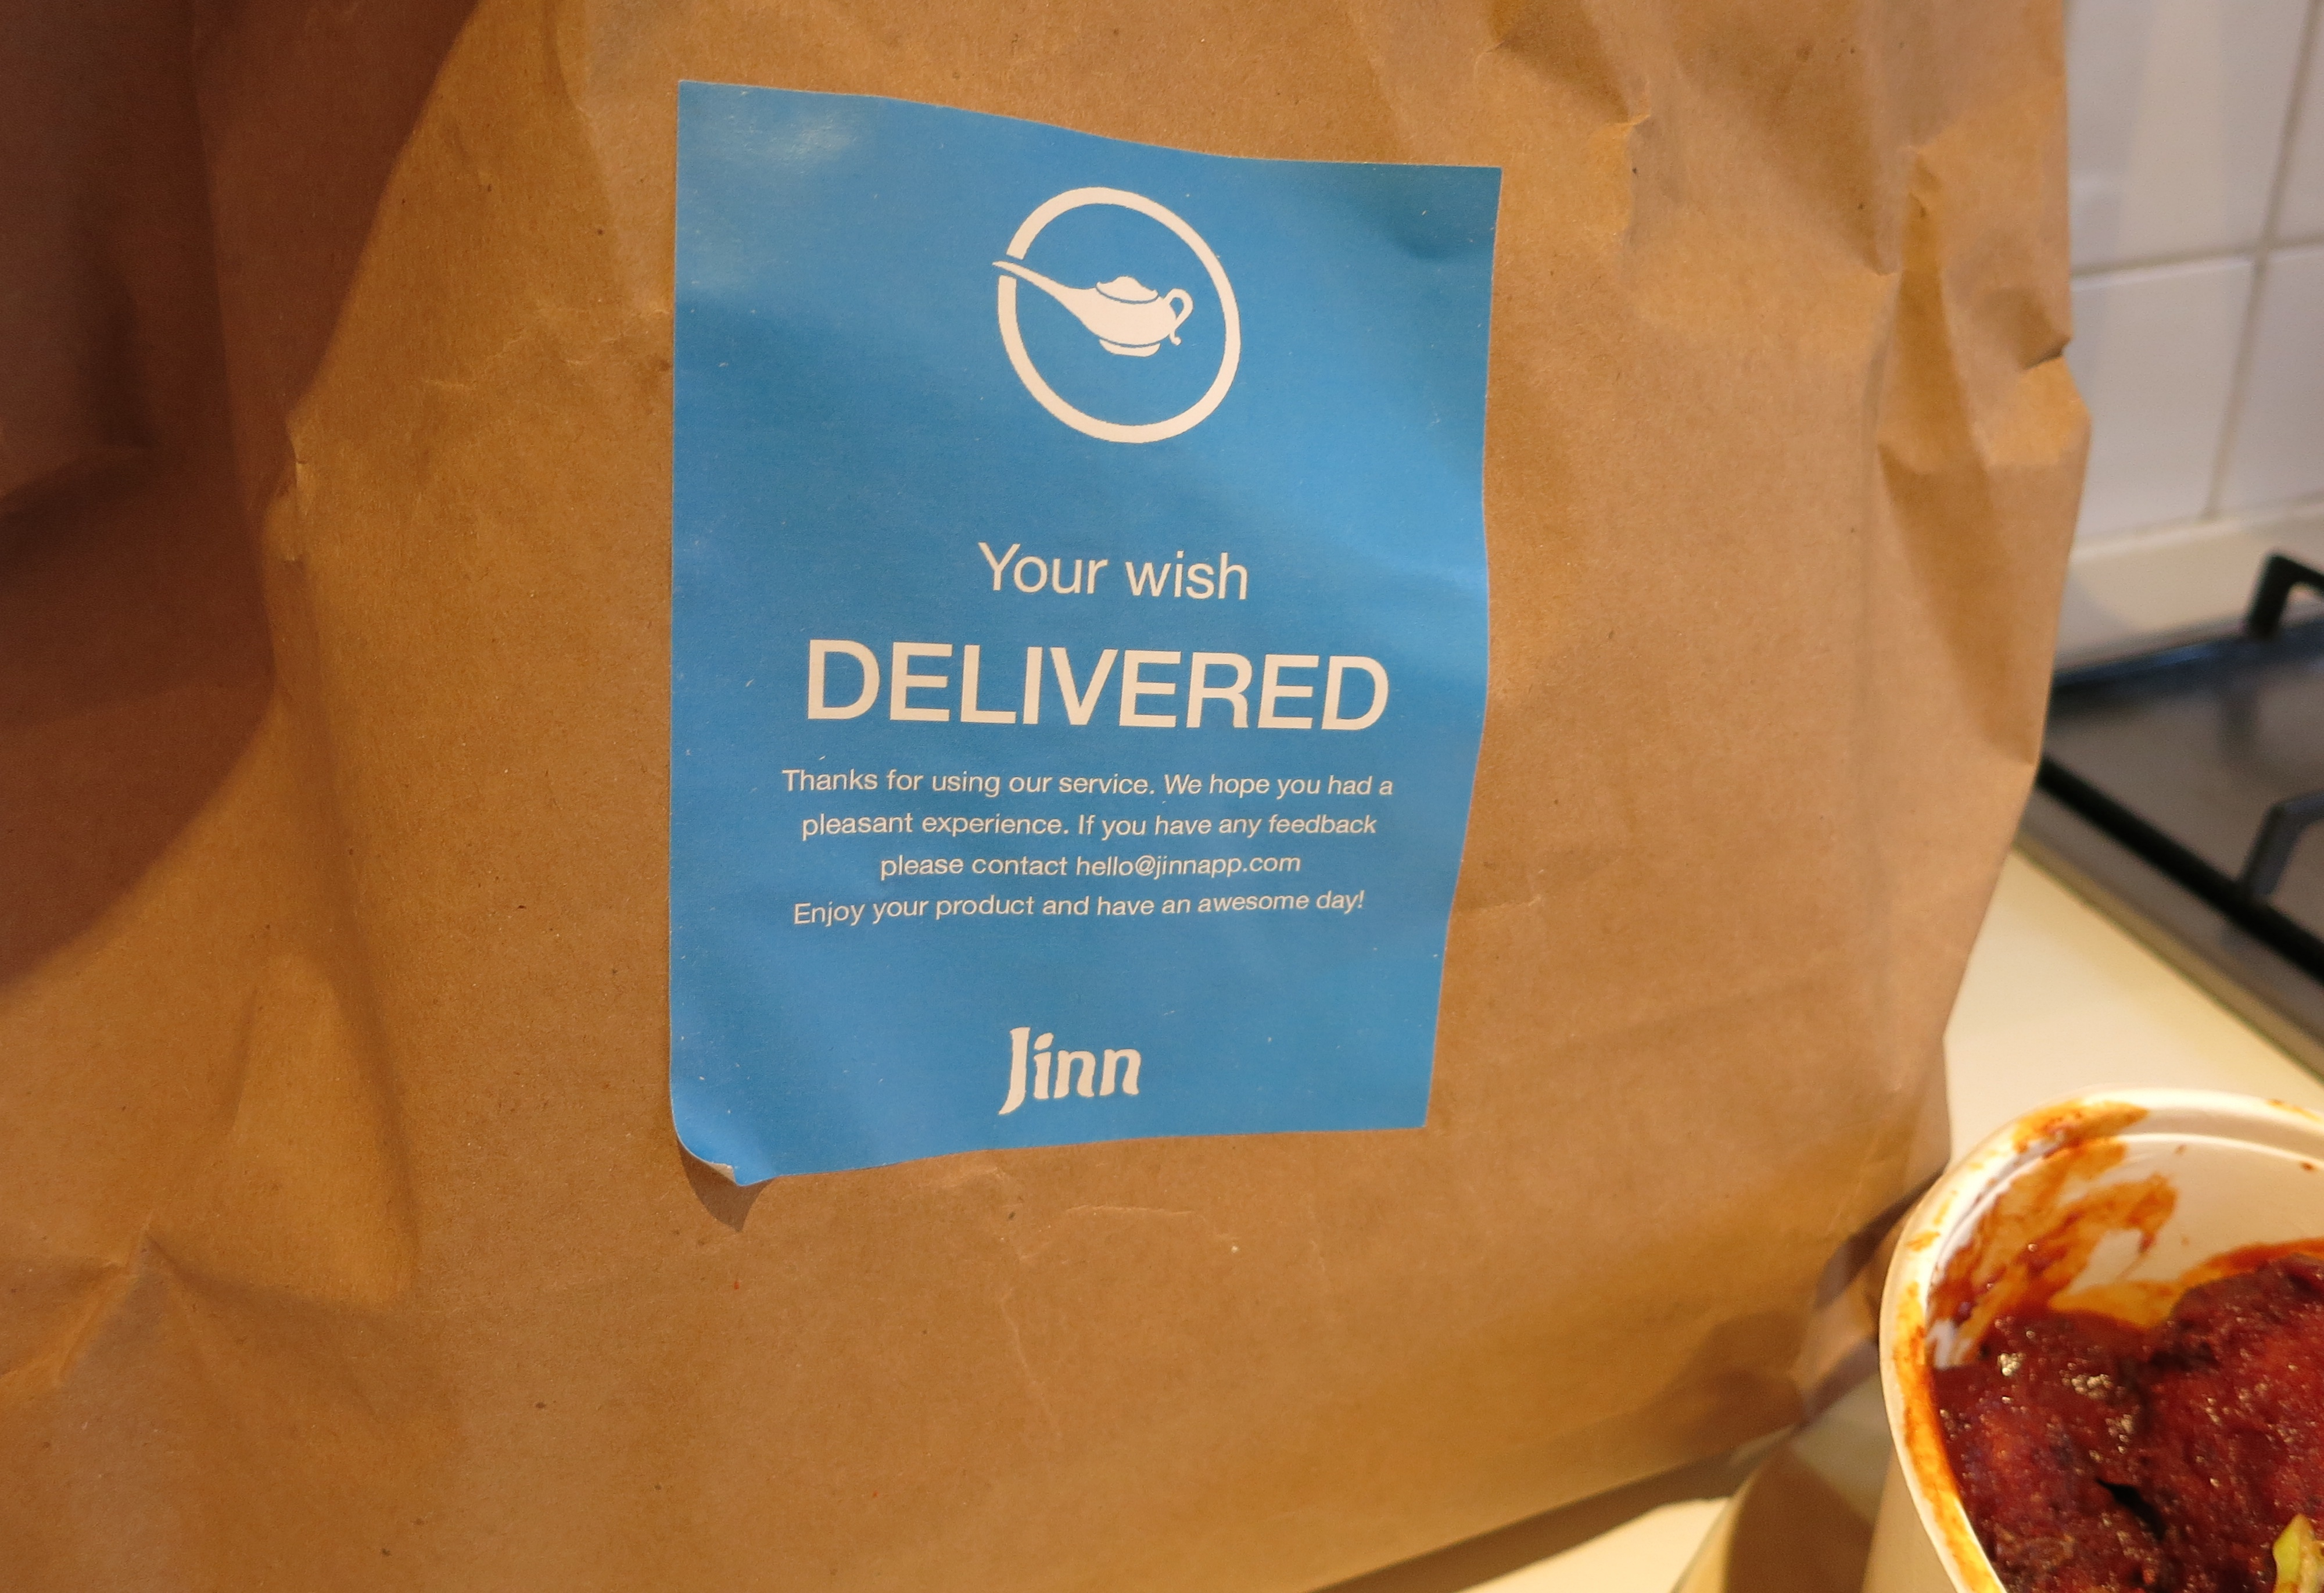 Online shoppers alienated by poor delivery experiences